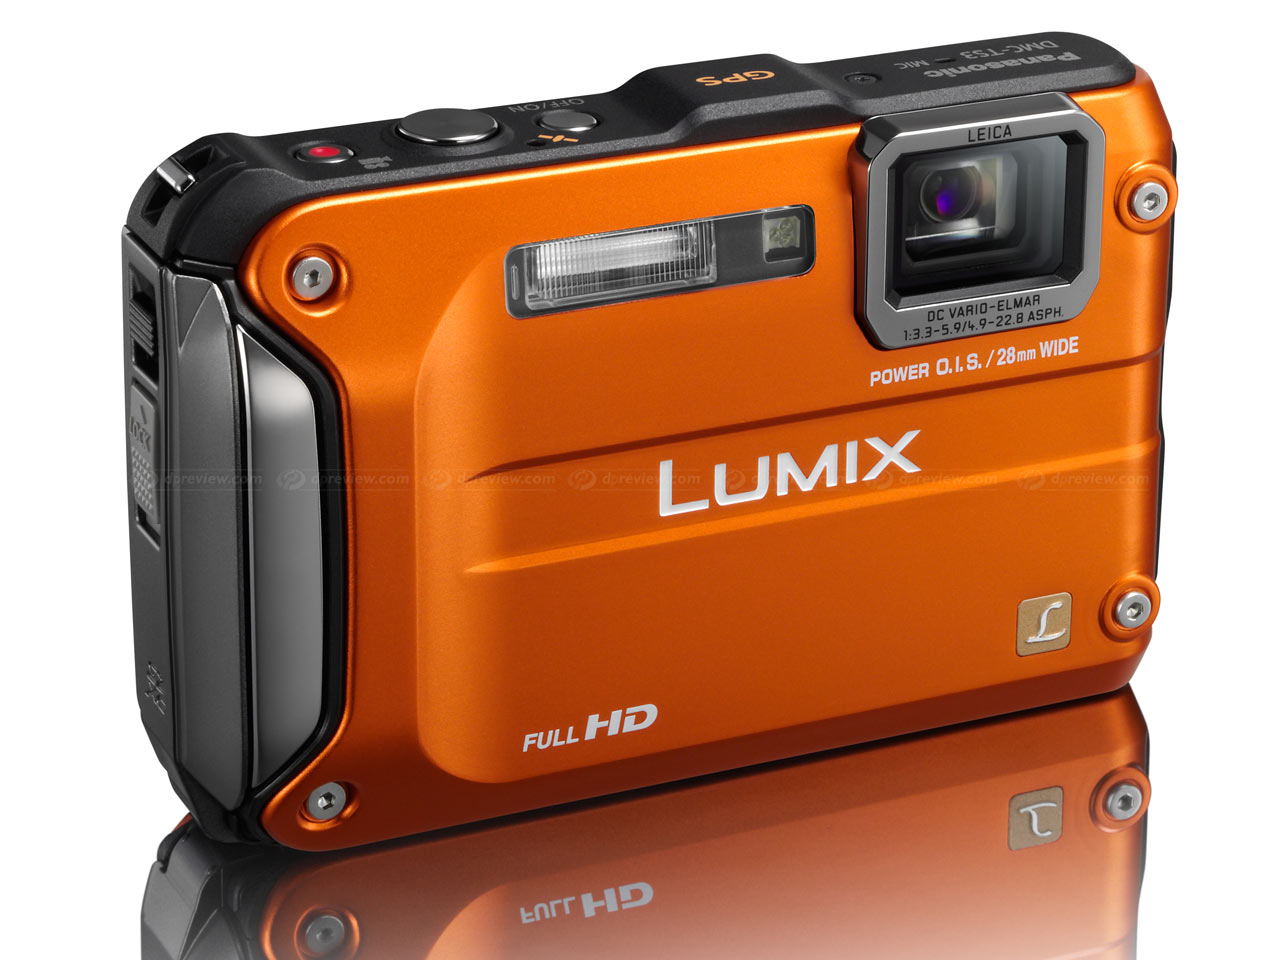 Panasonic S Newest Rugged Lumix Digital Camera Complete With Gps Comp Is Perfect For Capturing Stunning Photos And Hd Videos During Outdoor Activities